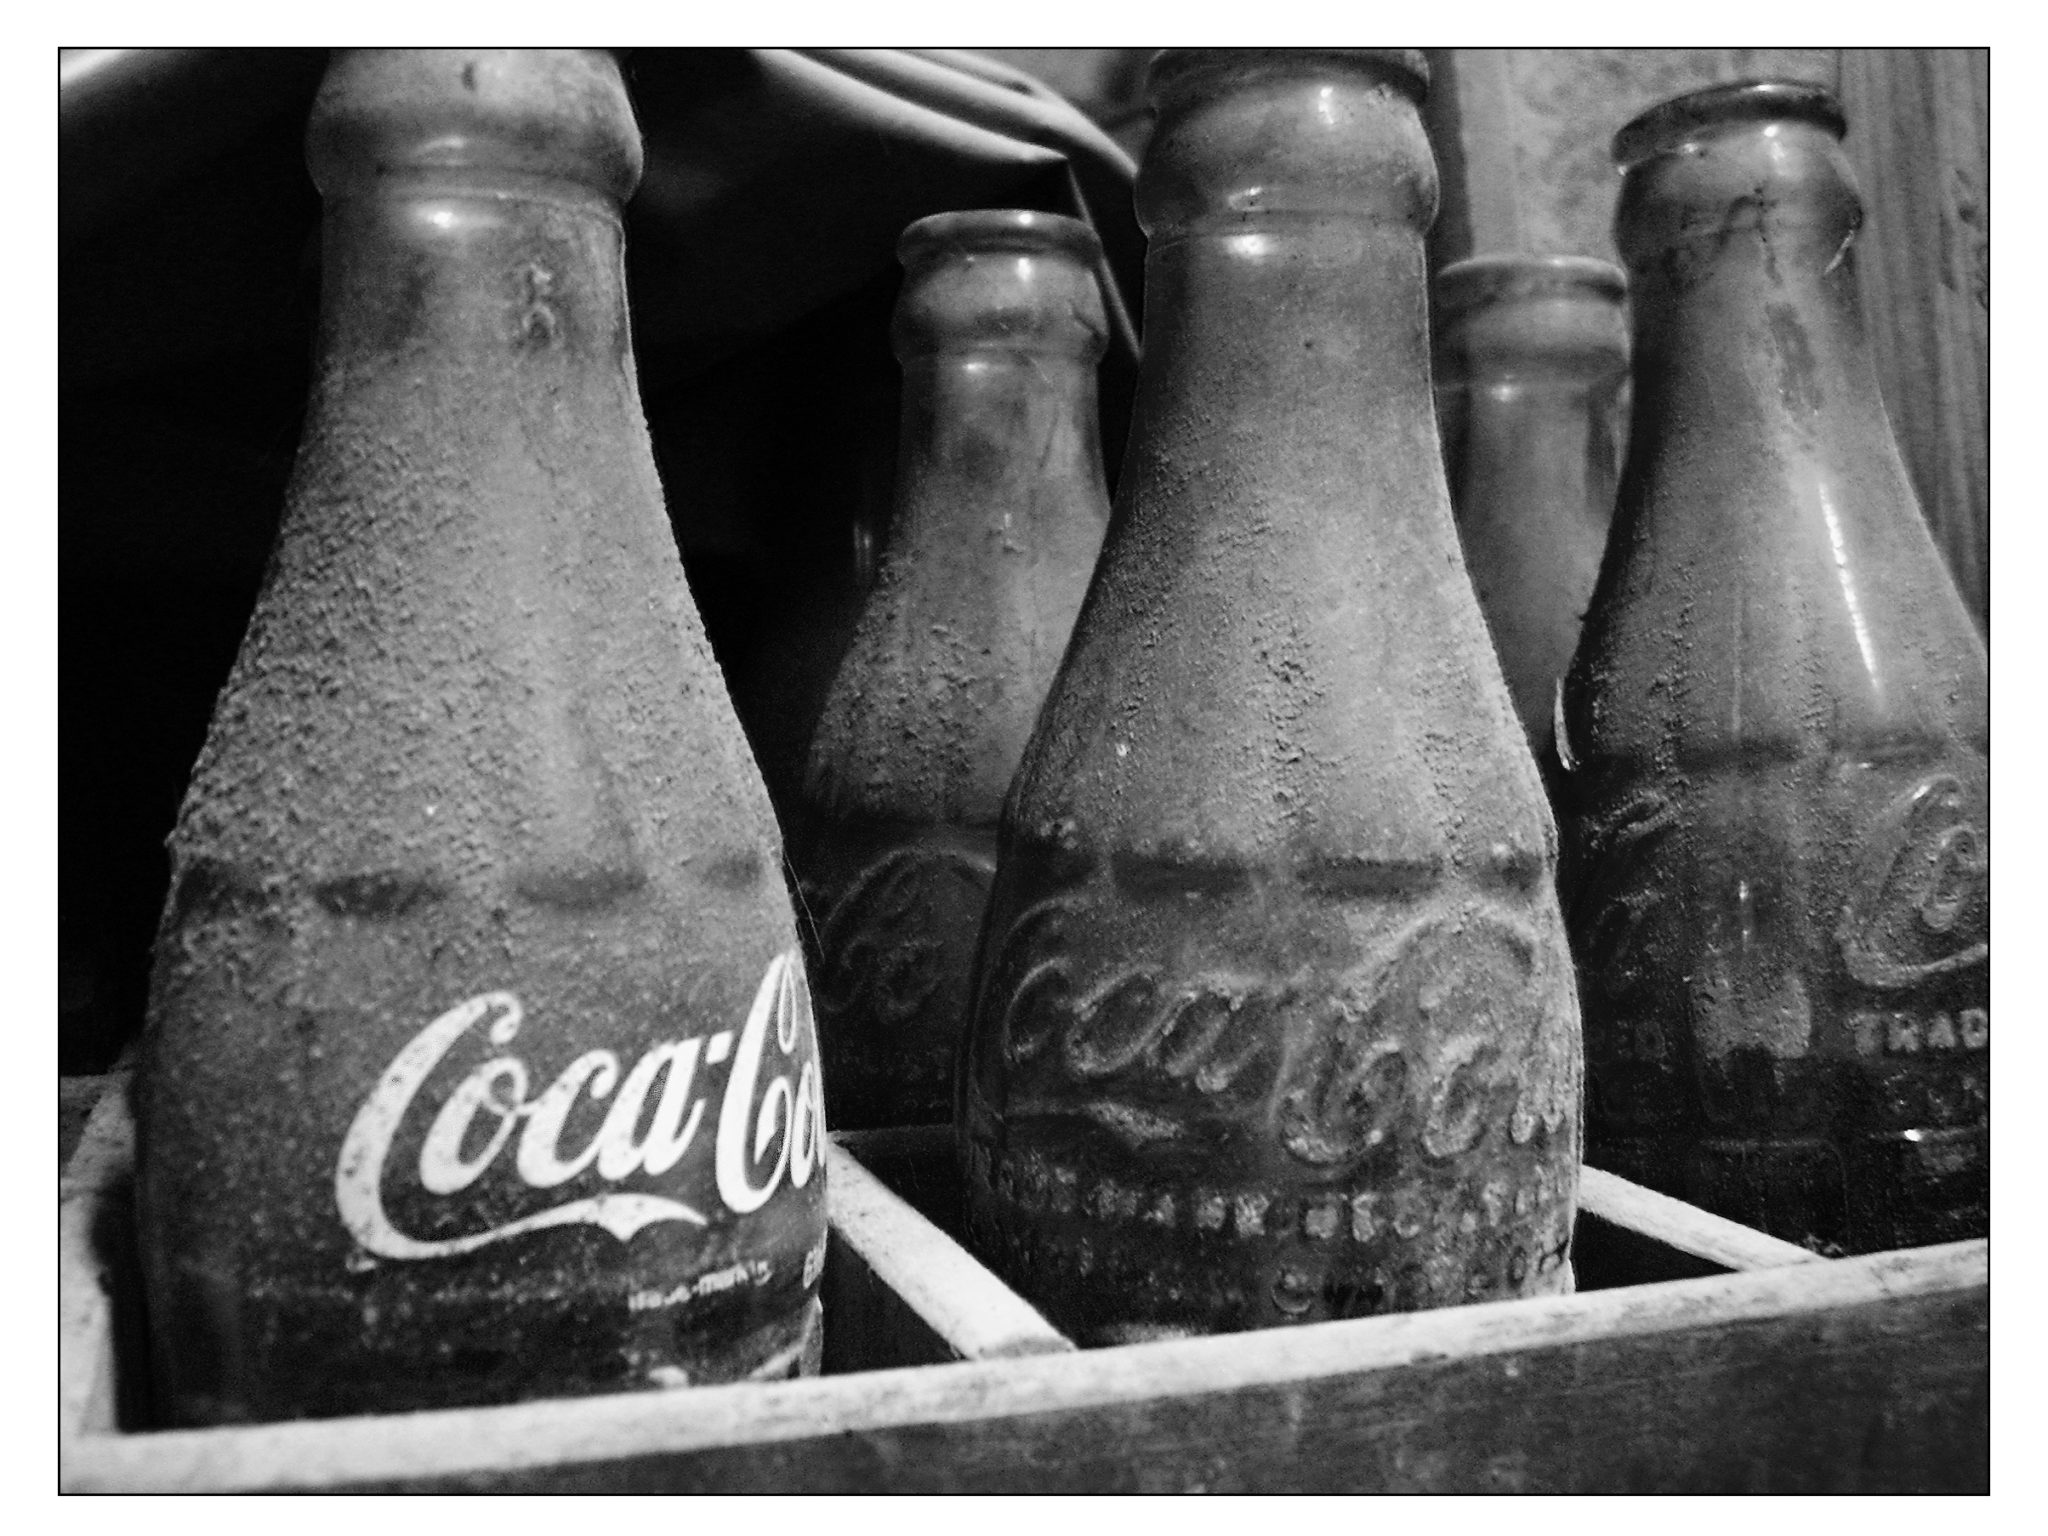 Coca Cola Vintage Wallpapers